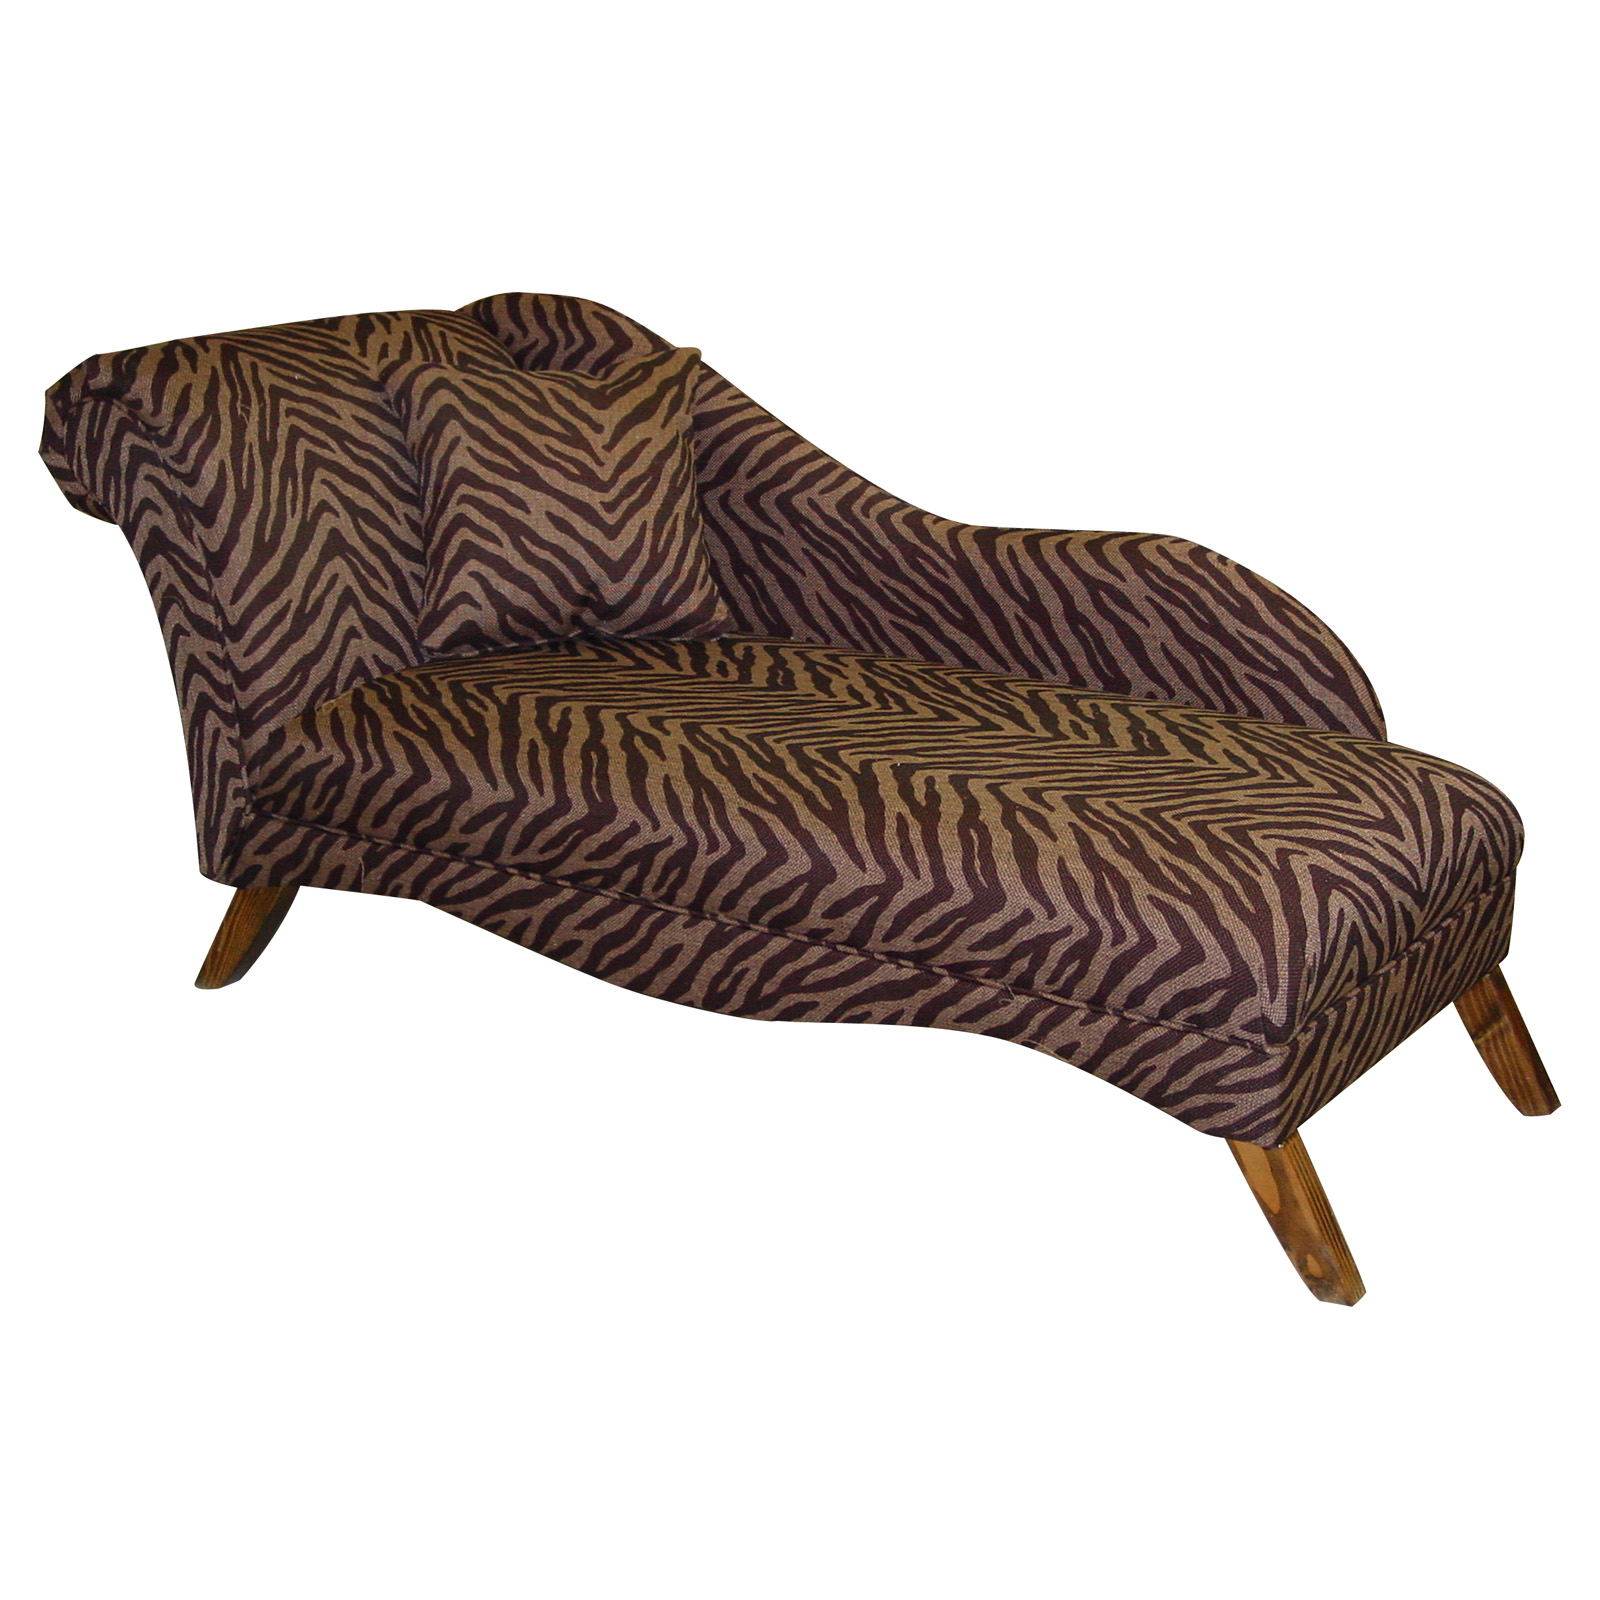 Cosmo chaise lounge animal print bam zizi at hayneedle for Animal print chaise